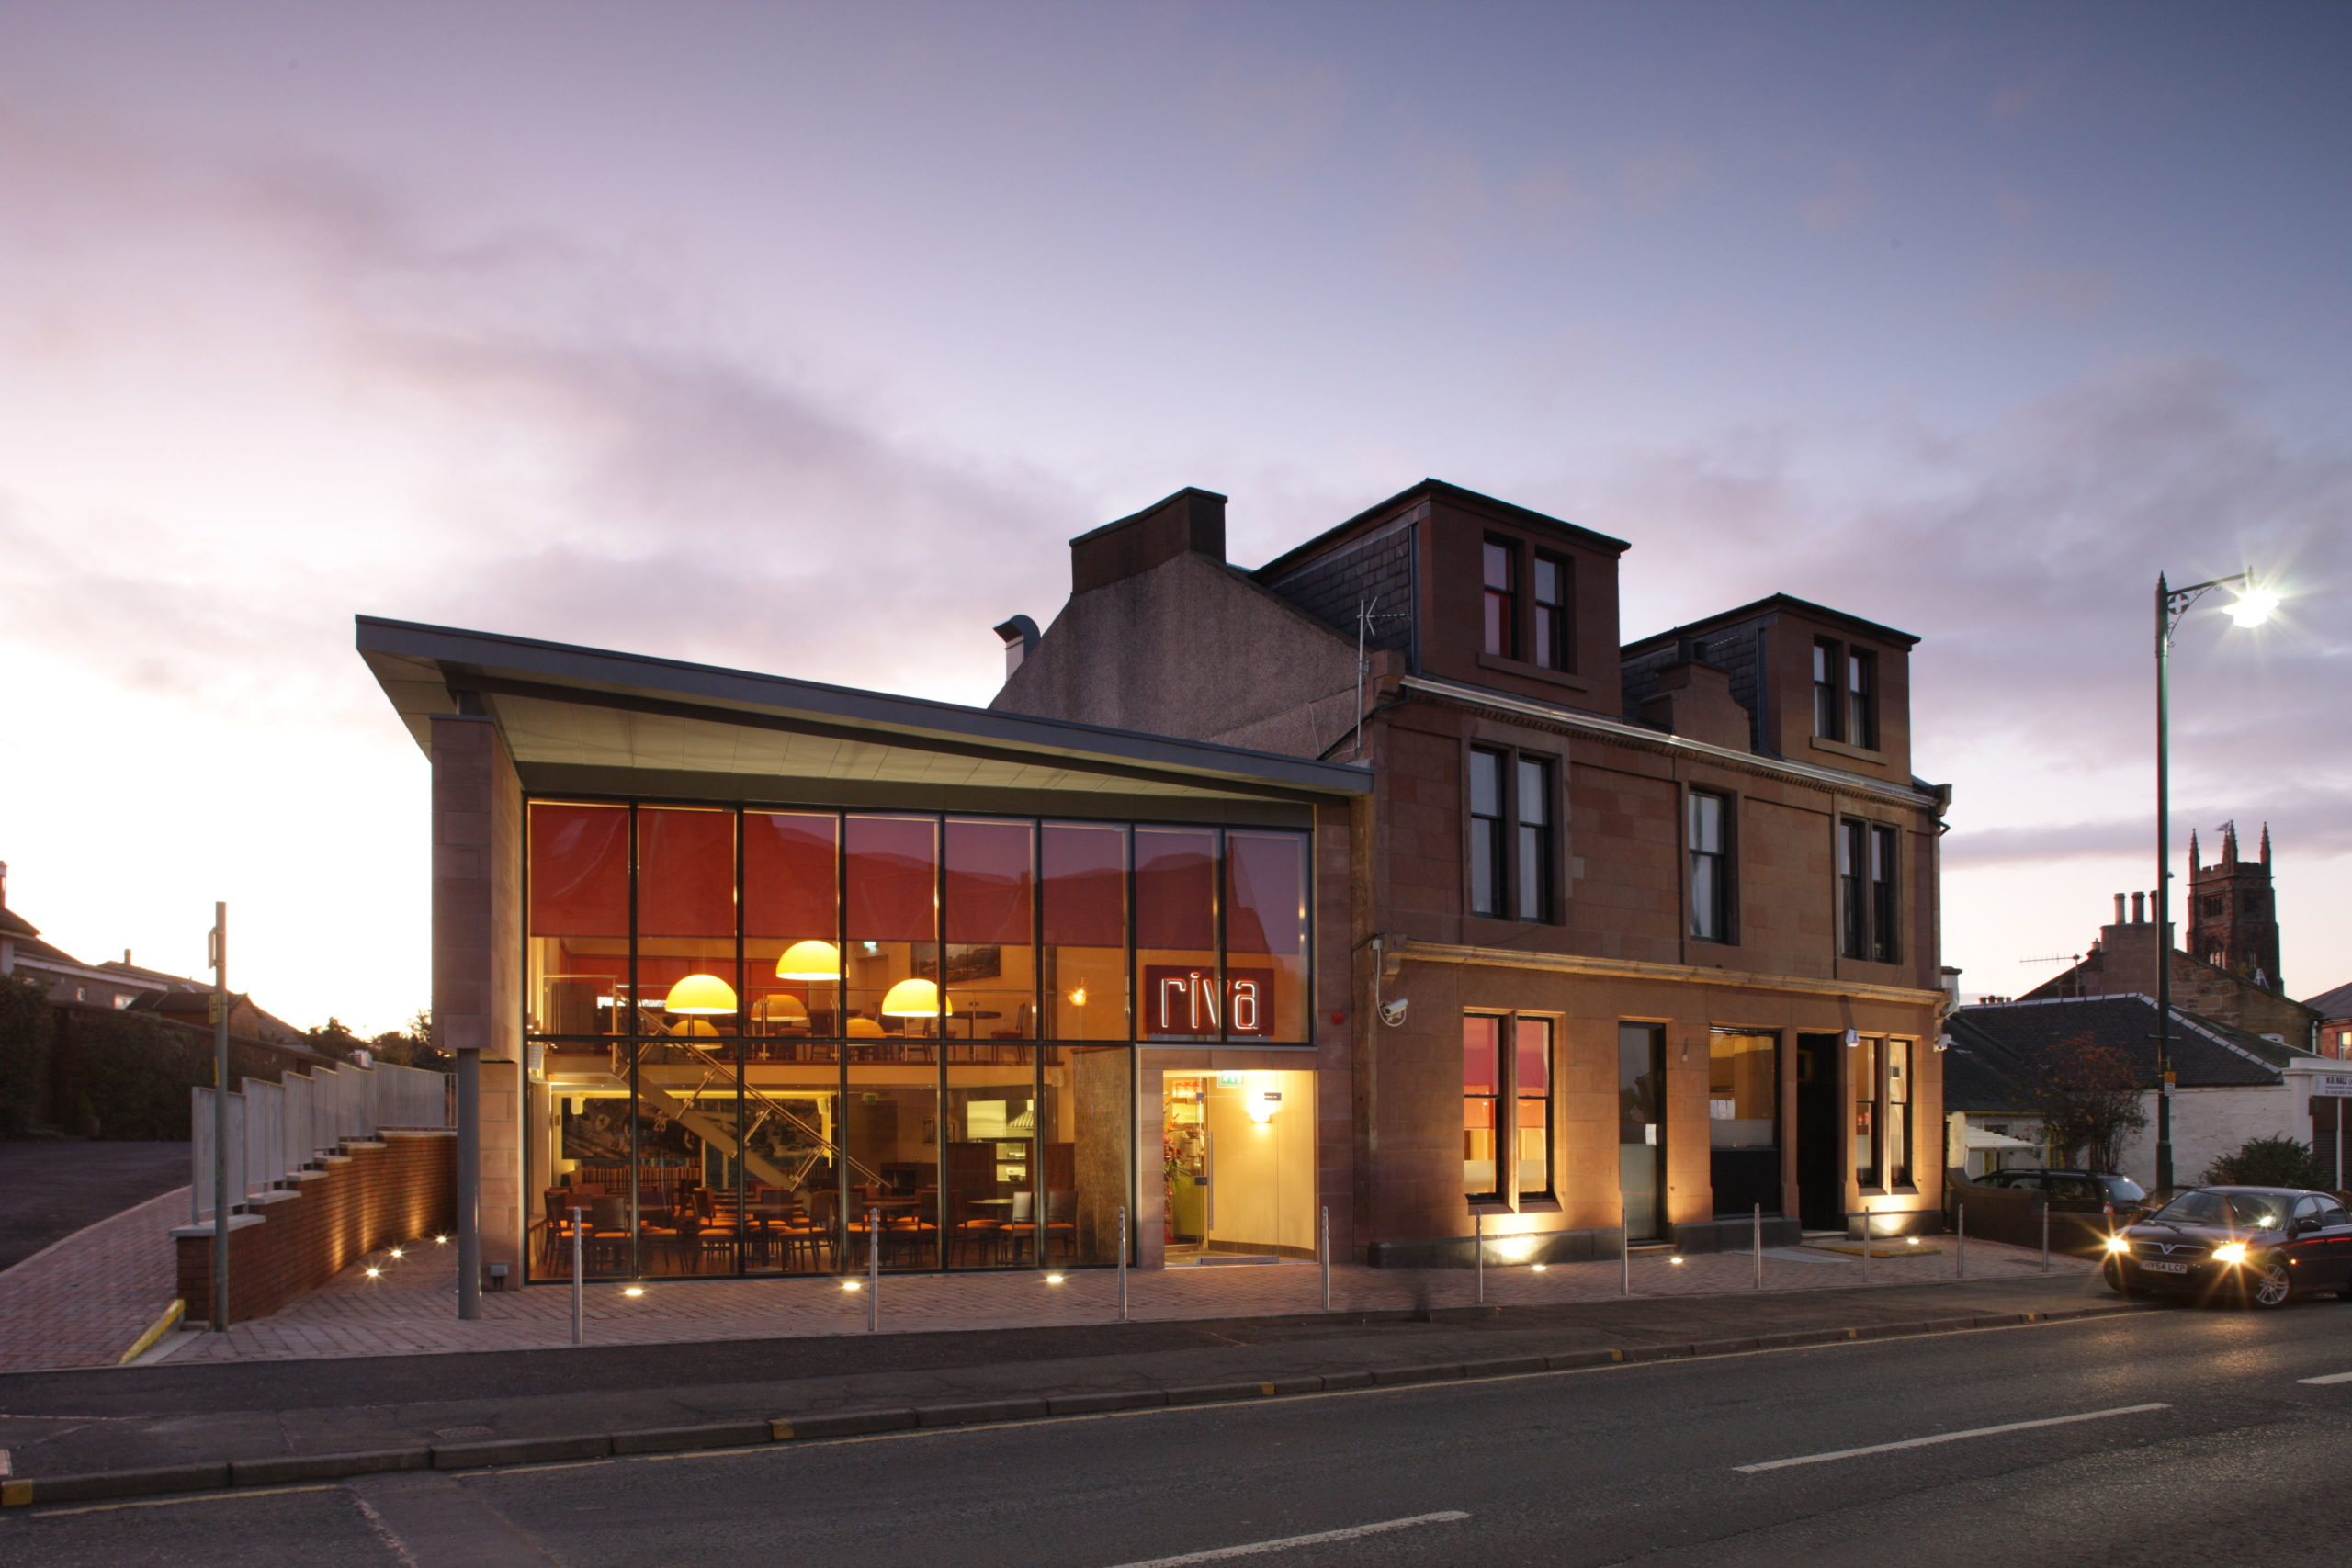 External view of the RIVA Restaurant project completed by CRGP